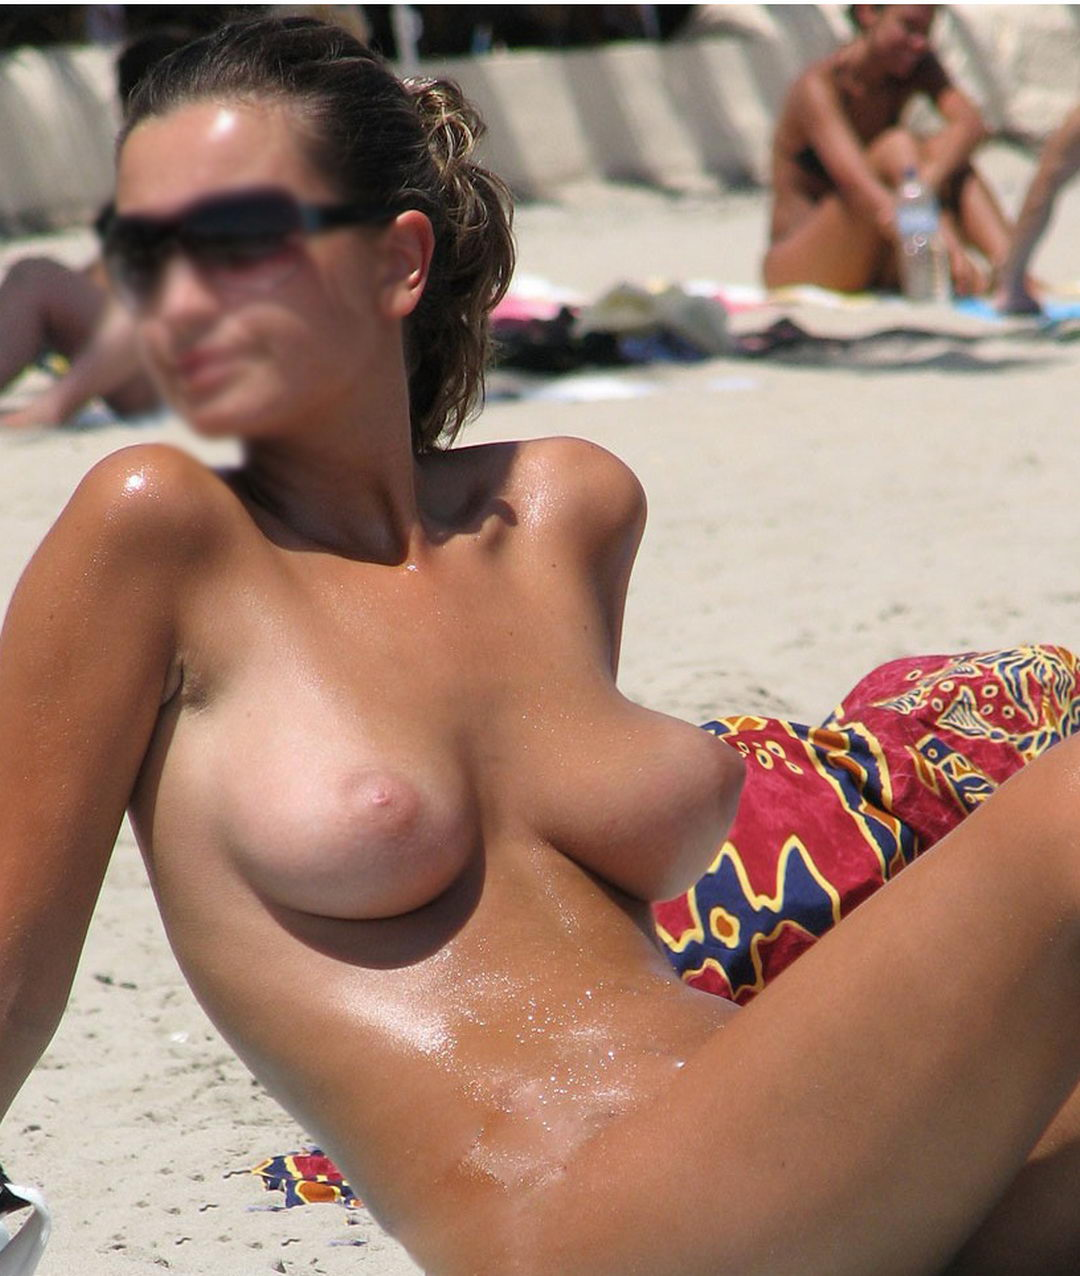 Tanned woman shows off large tits on the beach